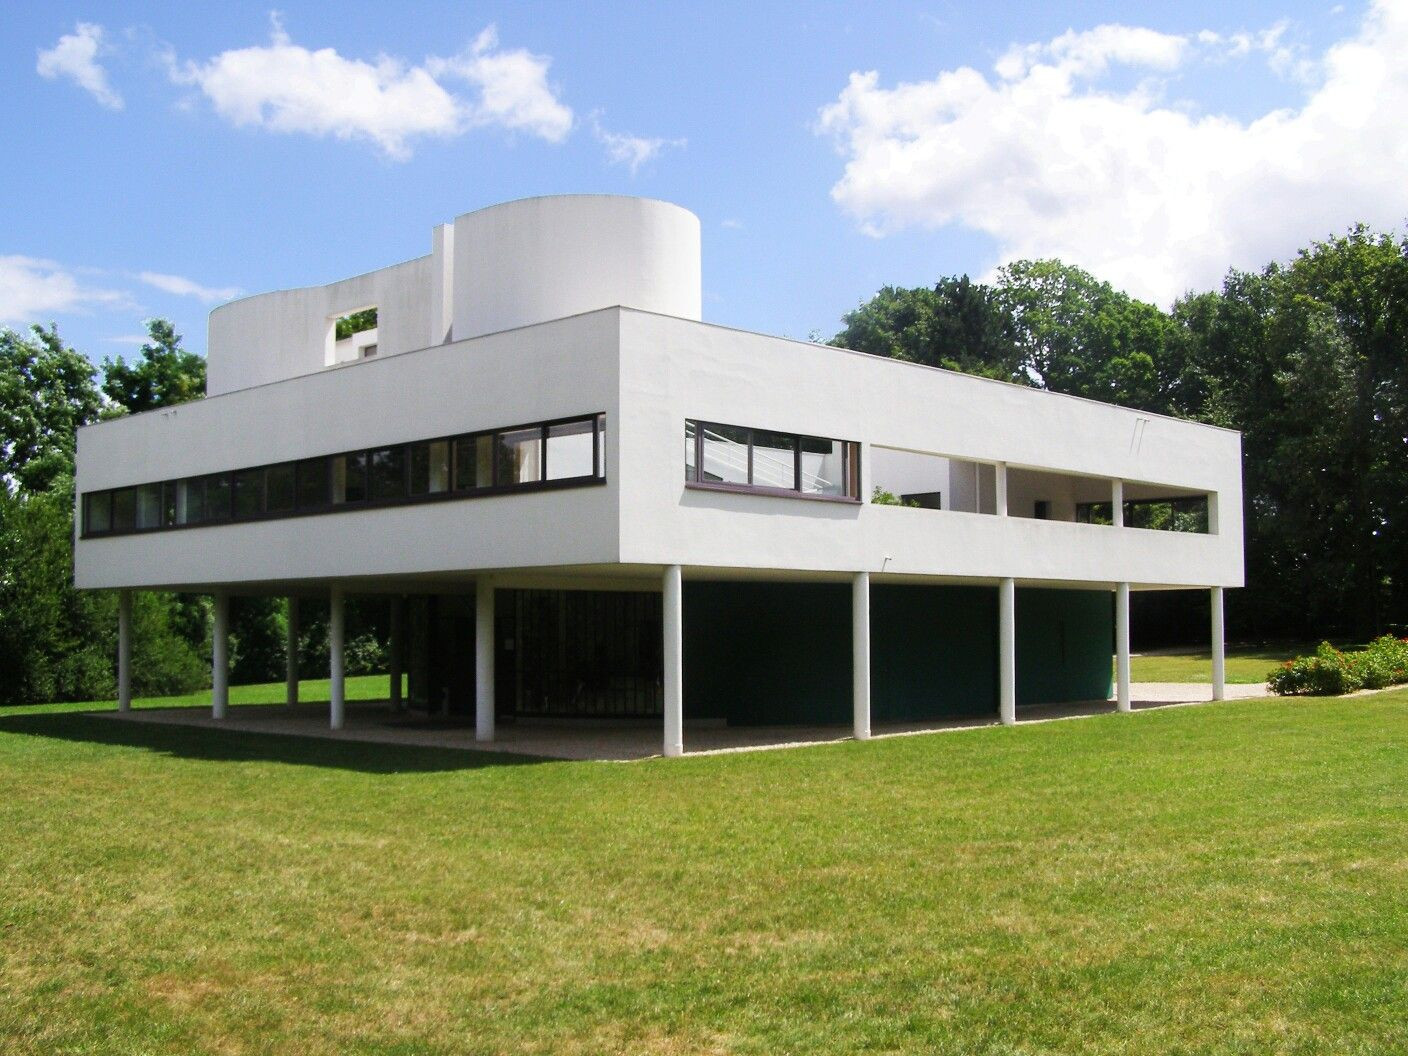 Technology Shown Here Is The Villa Savoye Located In Poissy